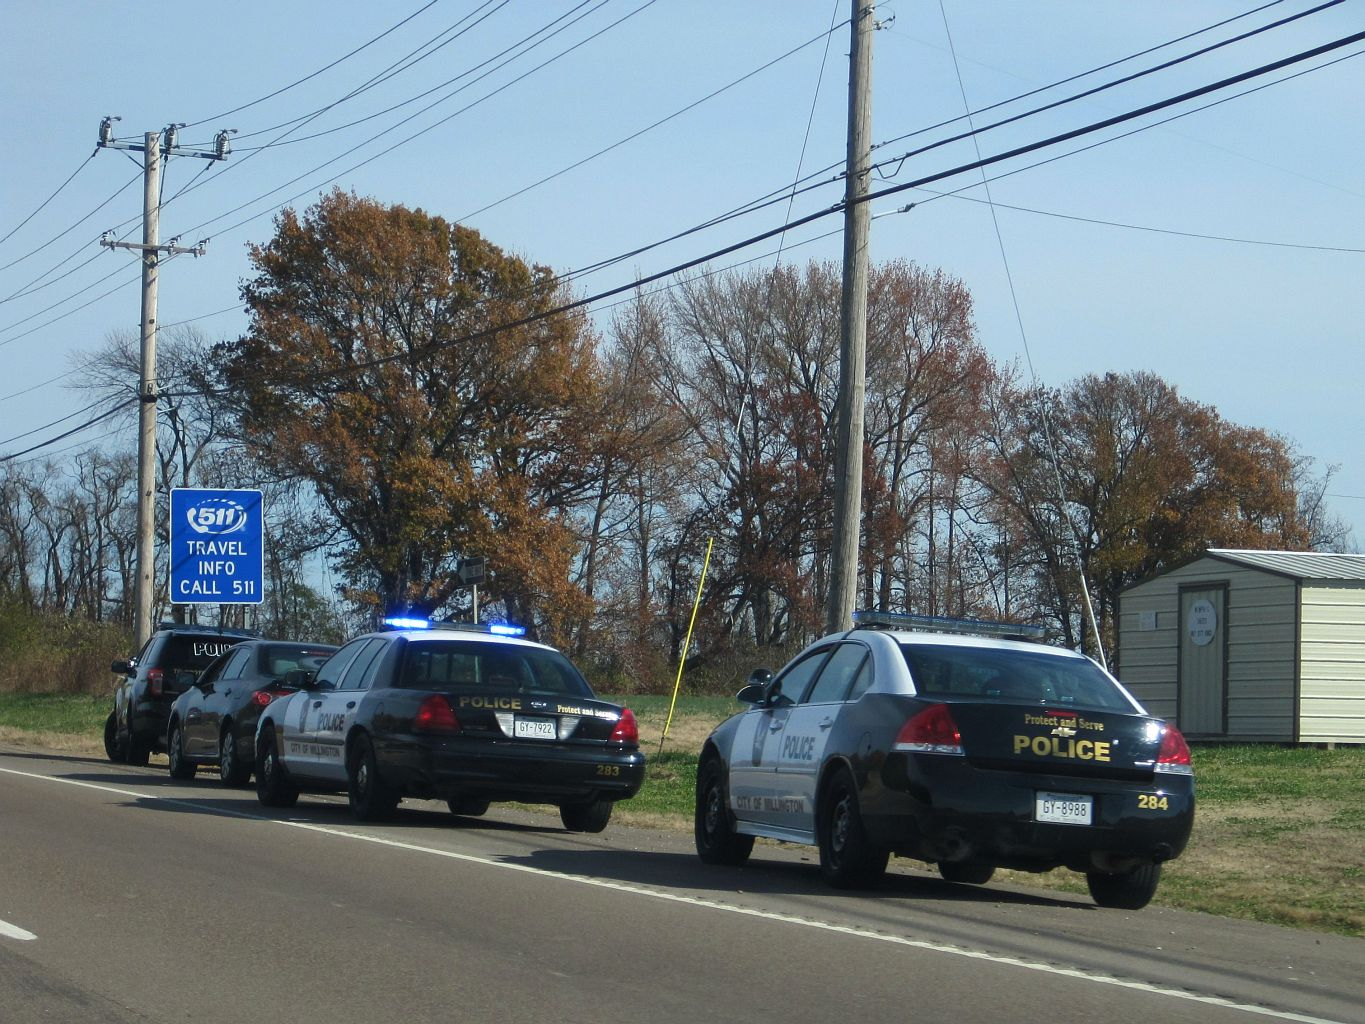 Police_traffic_stop_Millington_TN_2013-11-24_001